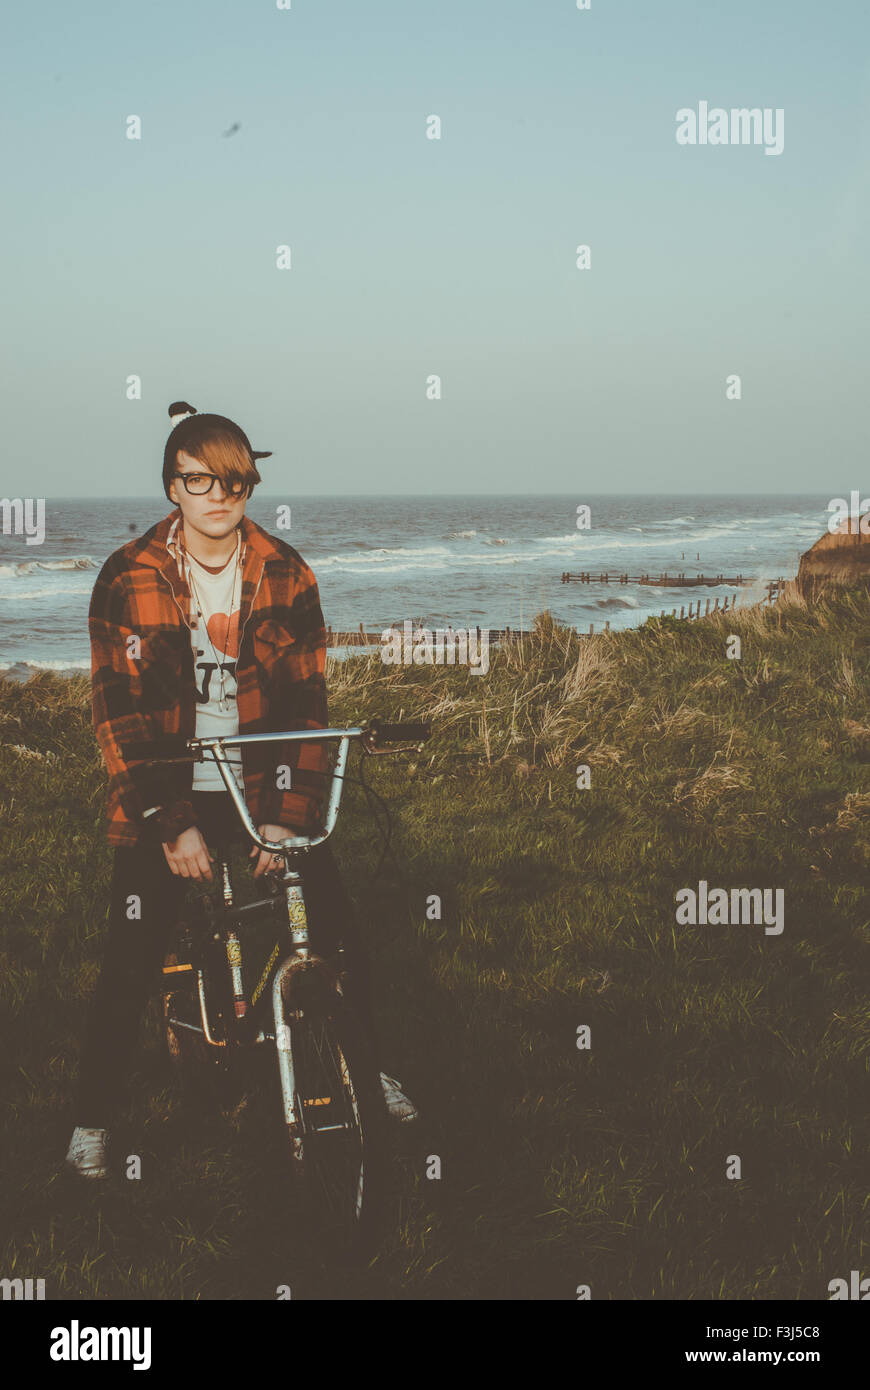 Teenage girl sitting on a bike by the coast - Stock Image